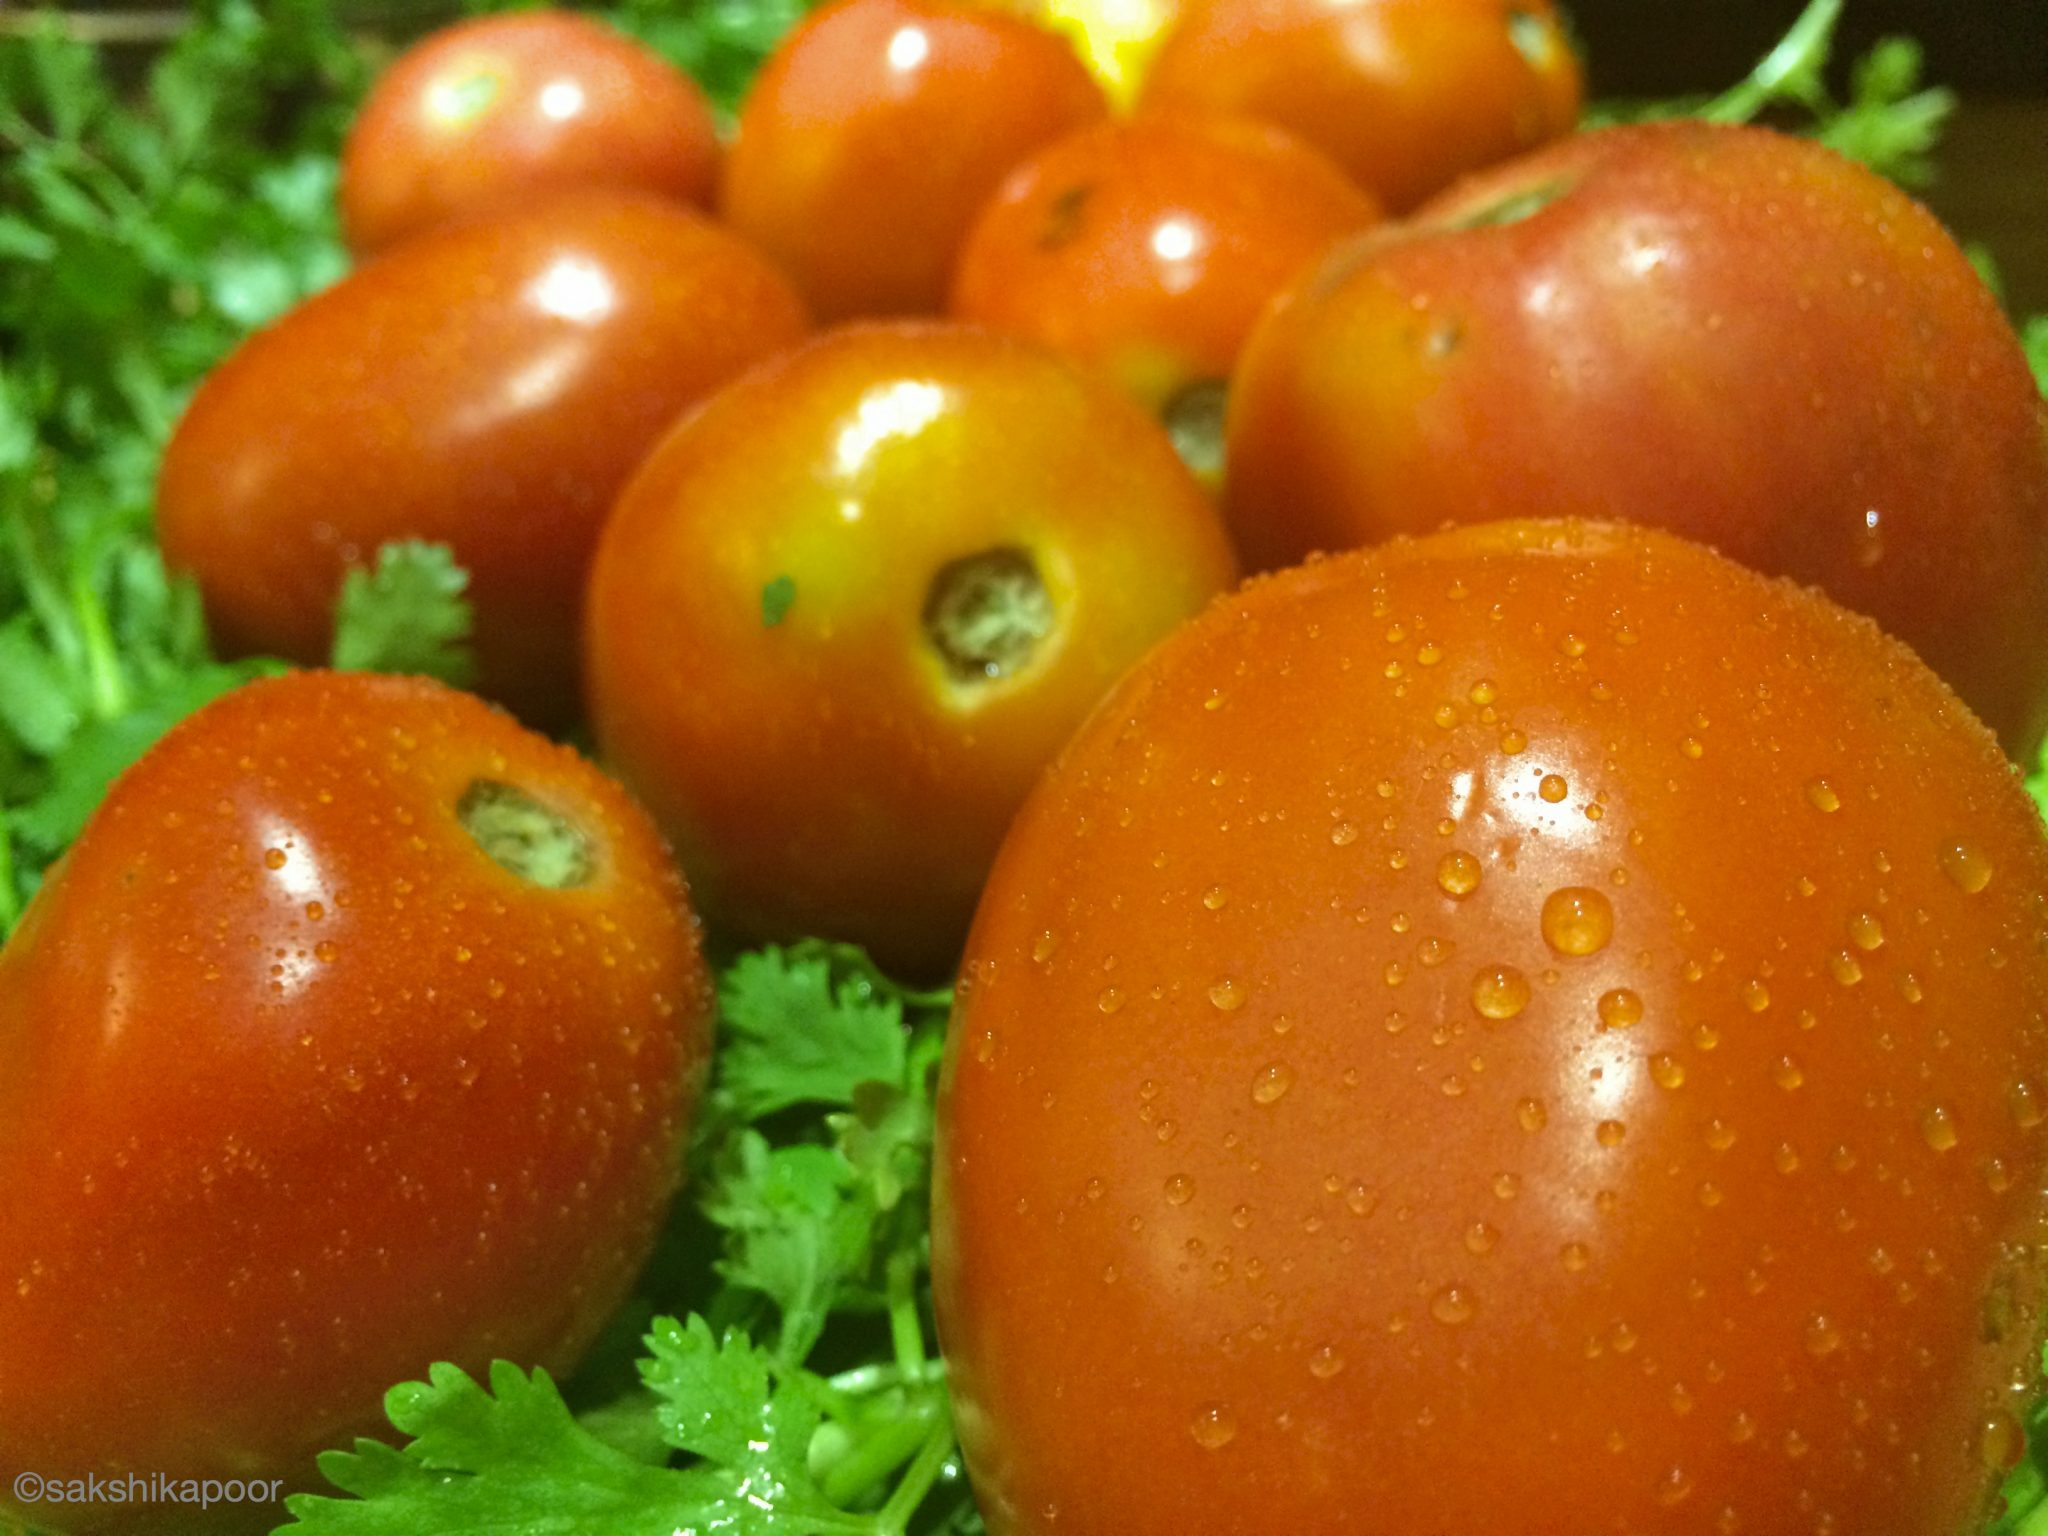 Indian desi tomatoes